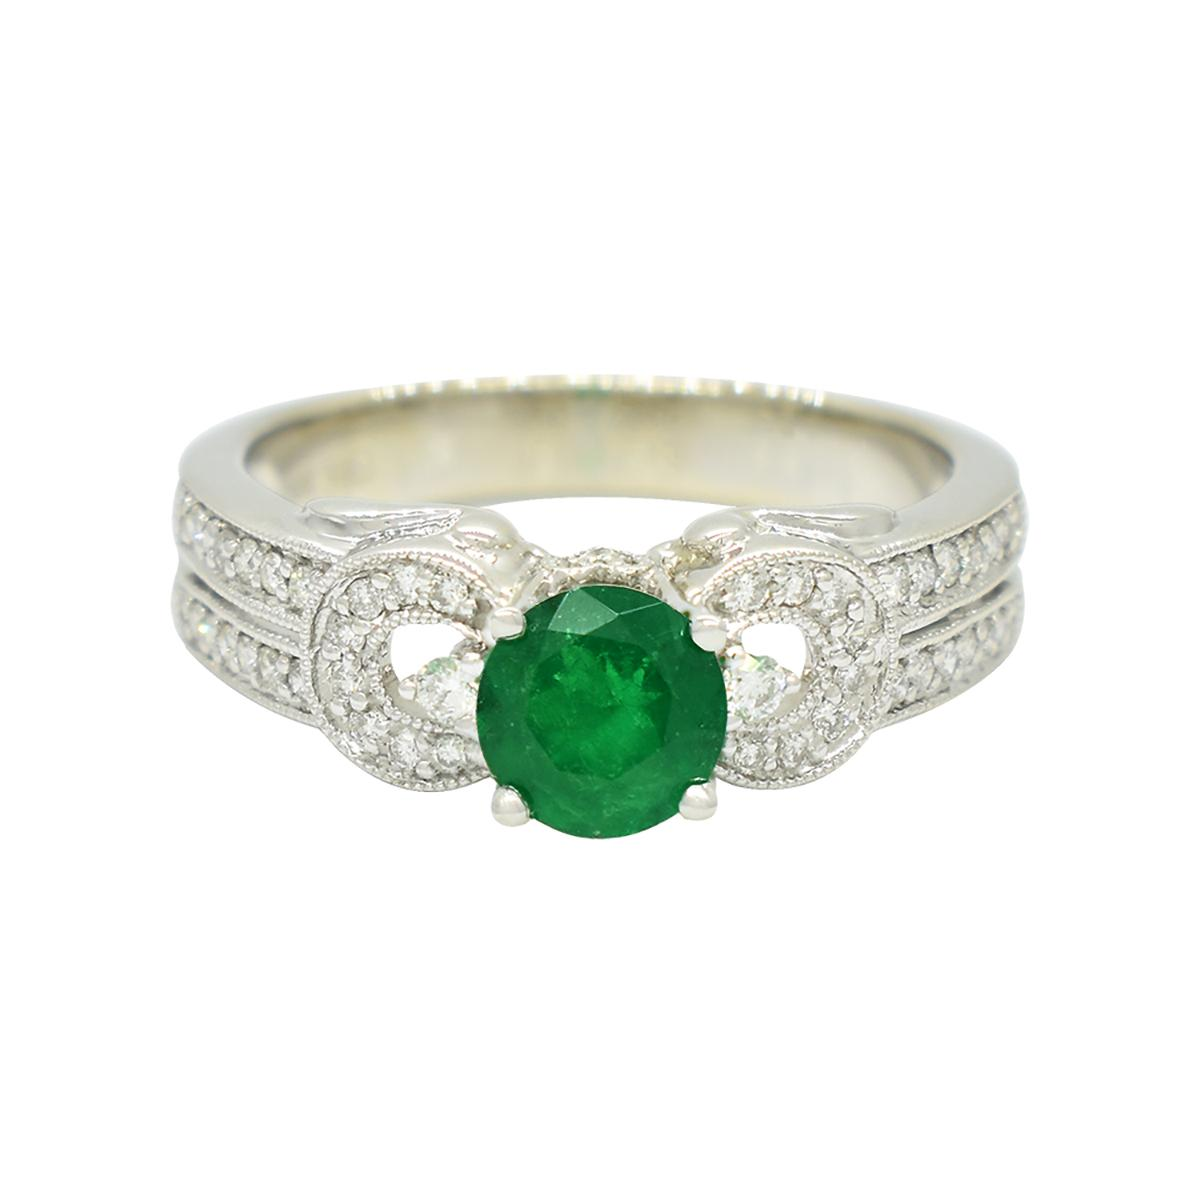 emerald-ring-in-14k-white-gold-with-44-round-diamonds-in-micro-pave-setting